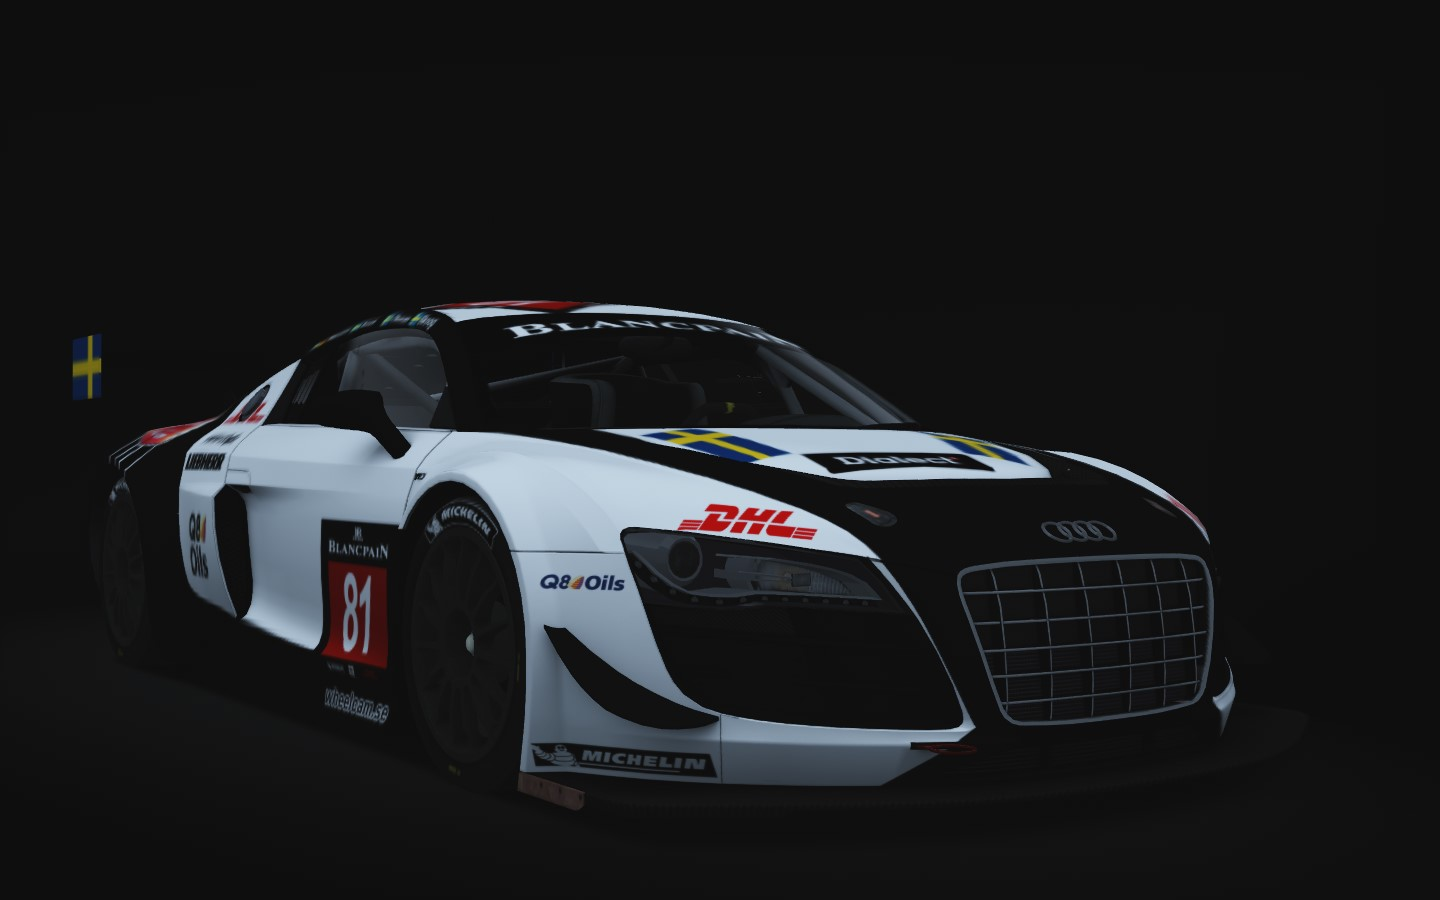 Showroom_audi_r8_lms_6-3-2015-18-14-55.jpg